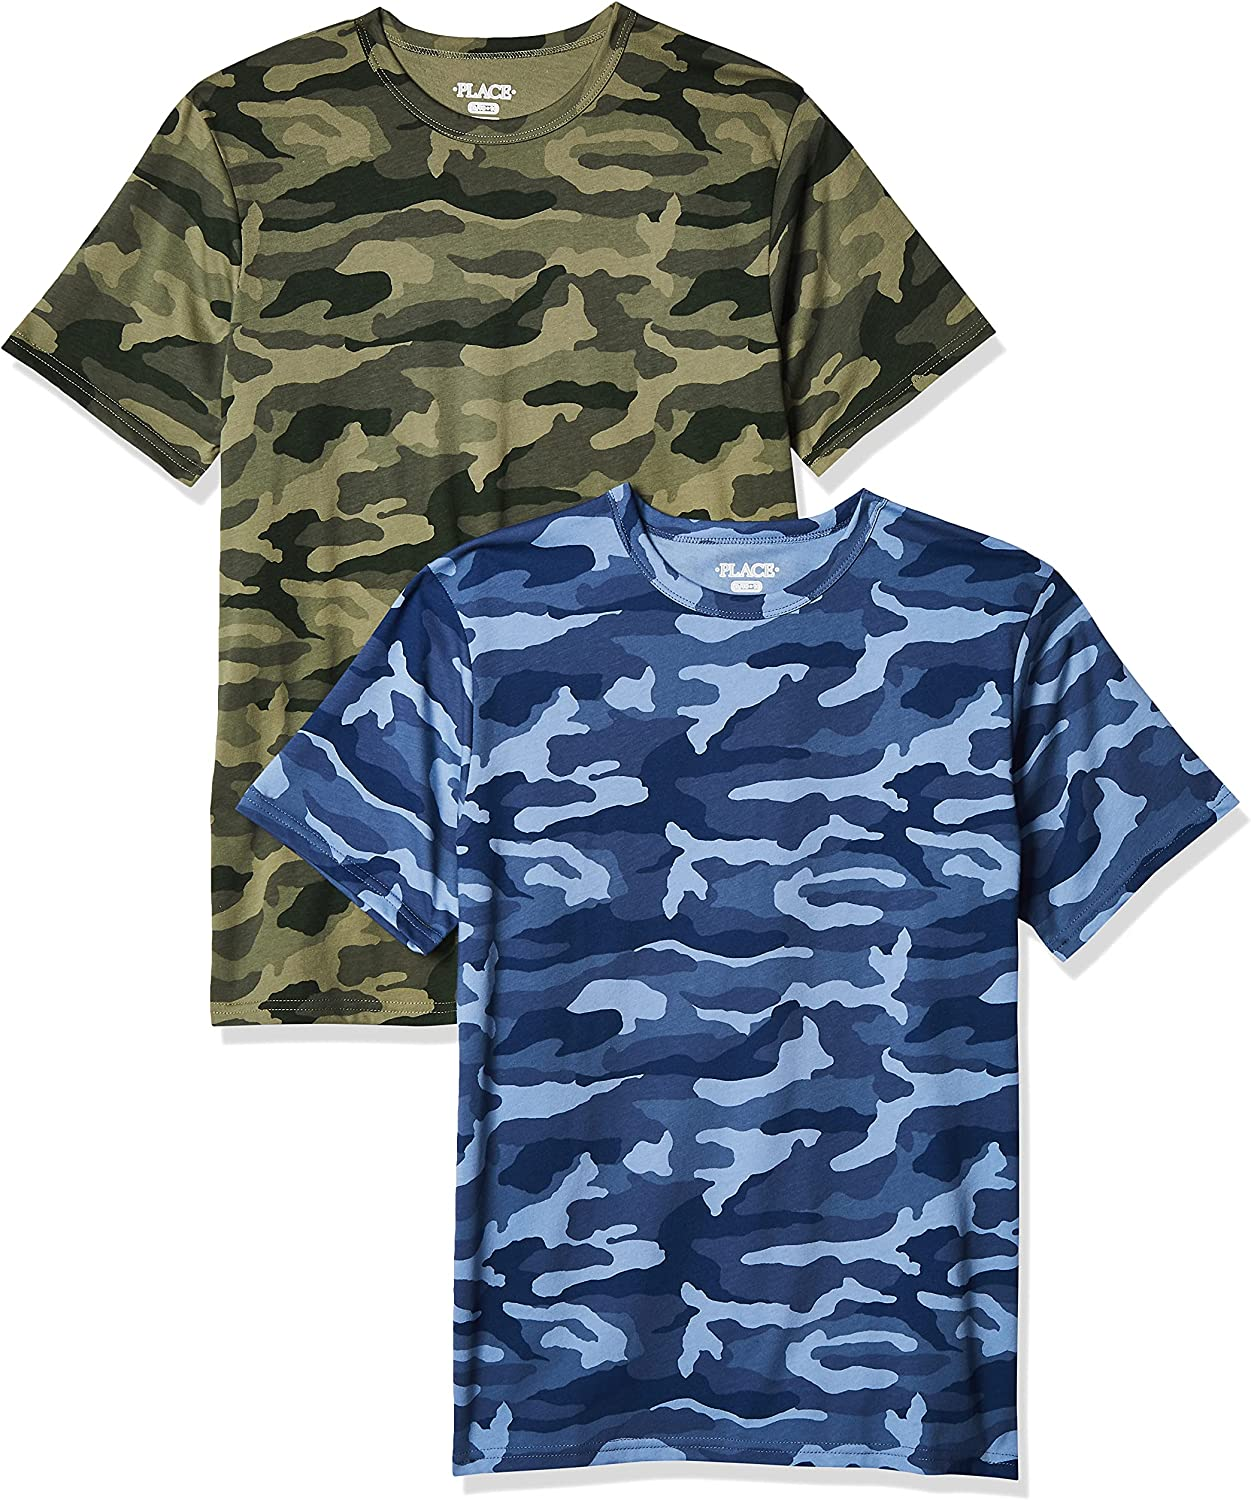 The Children's Place Boys Camo Top 2-Pack